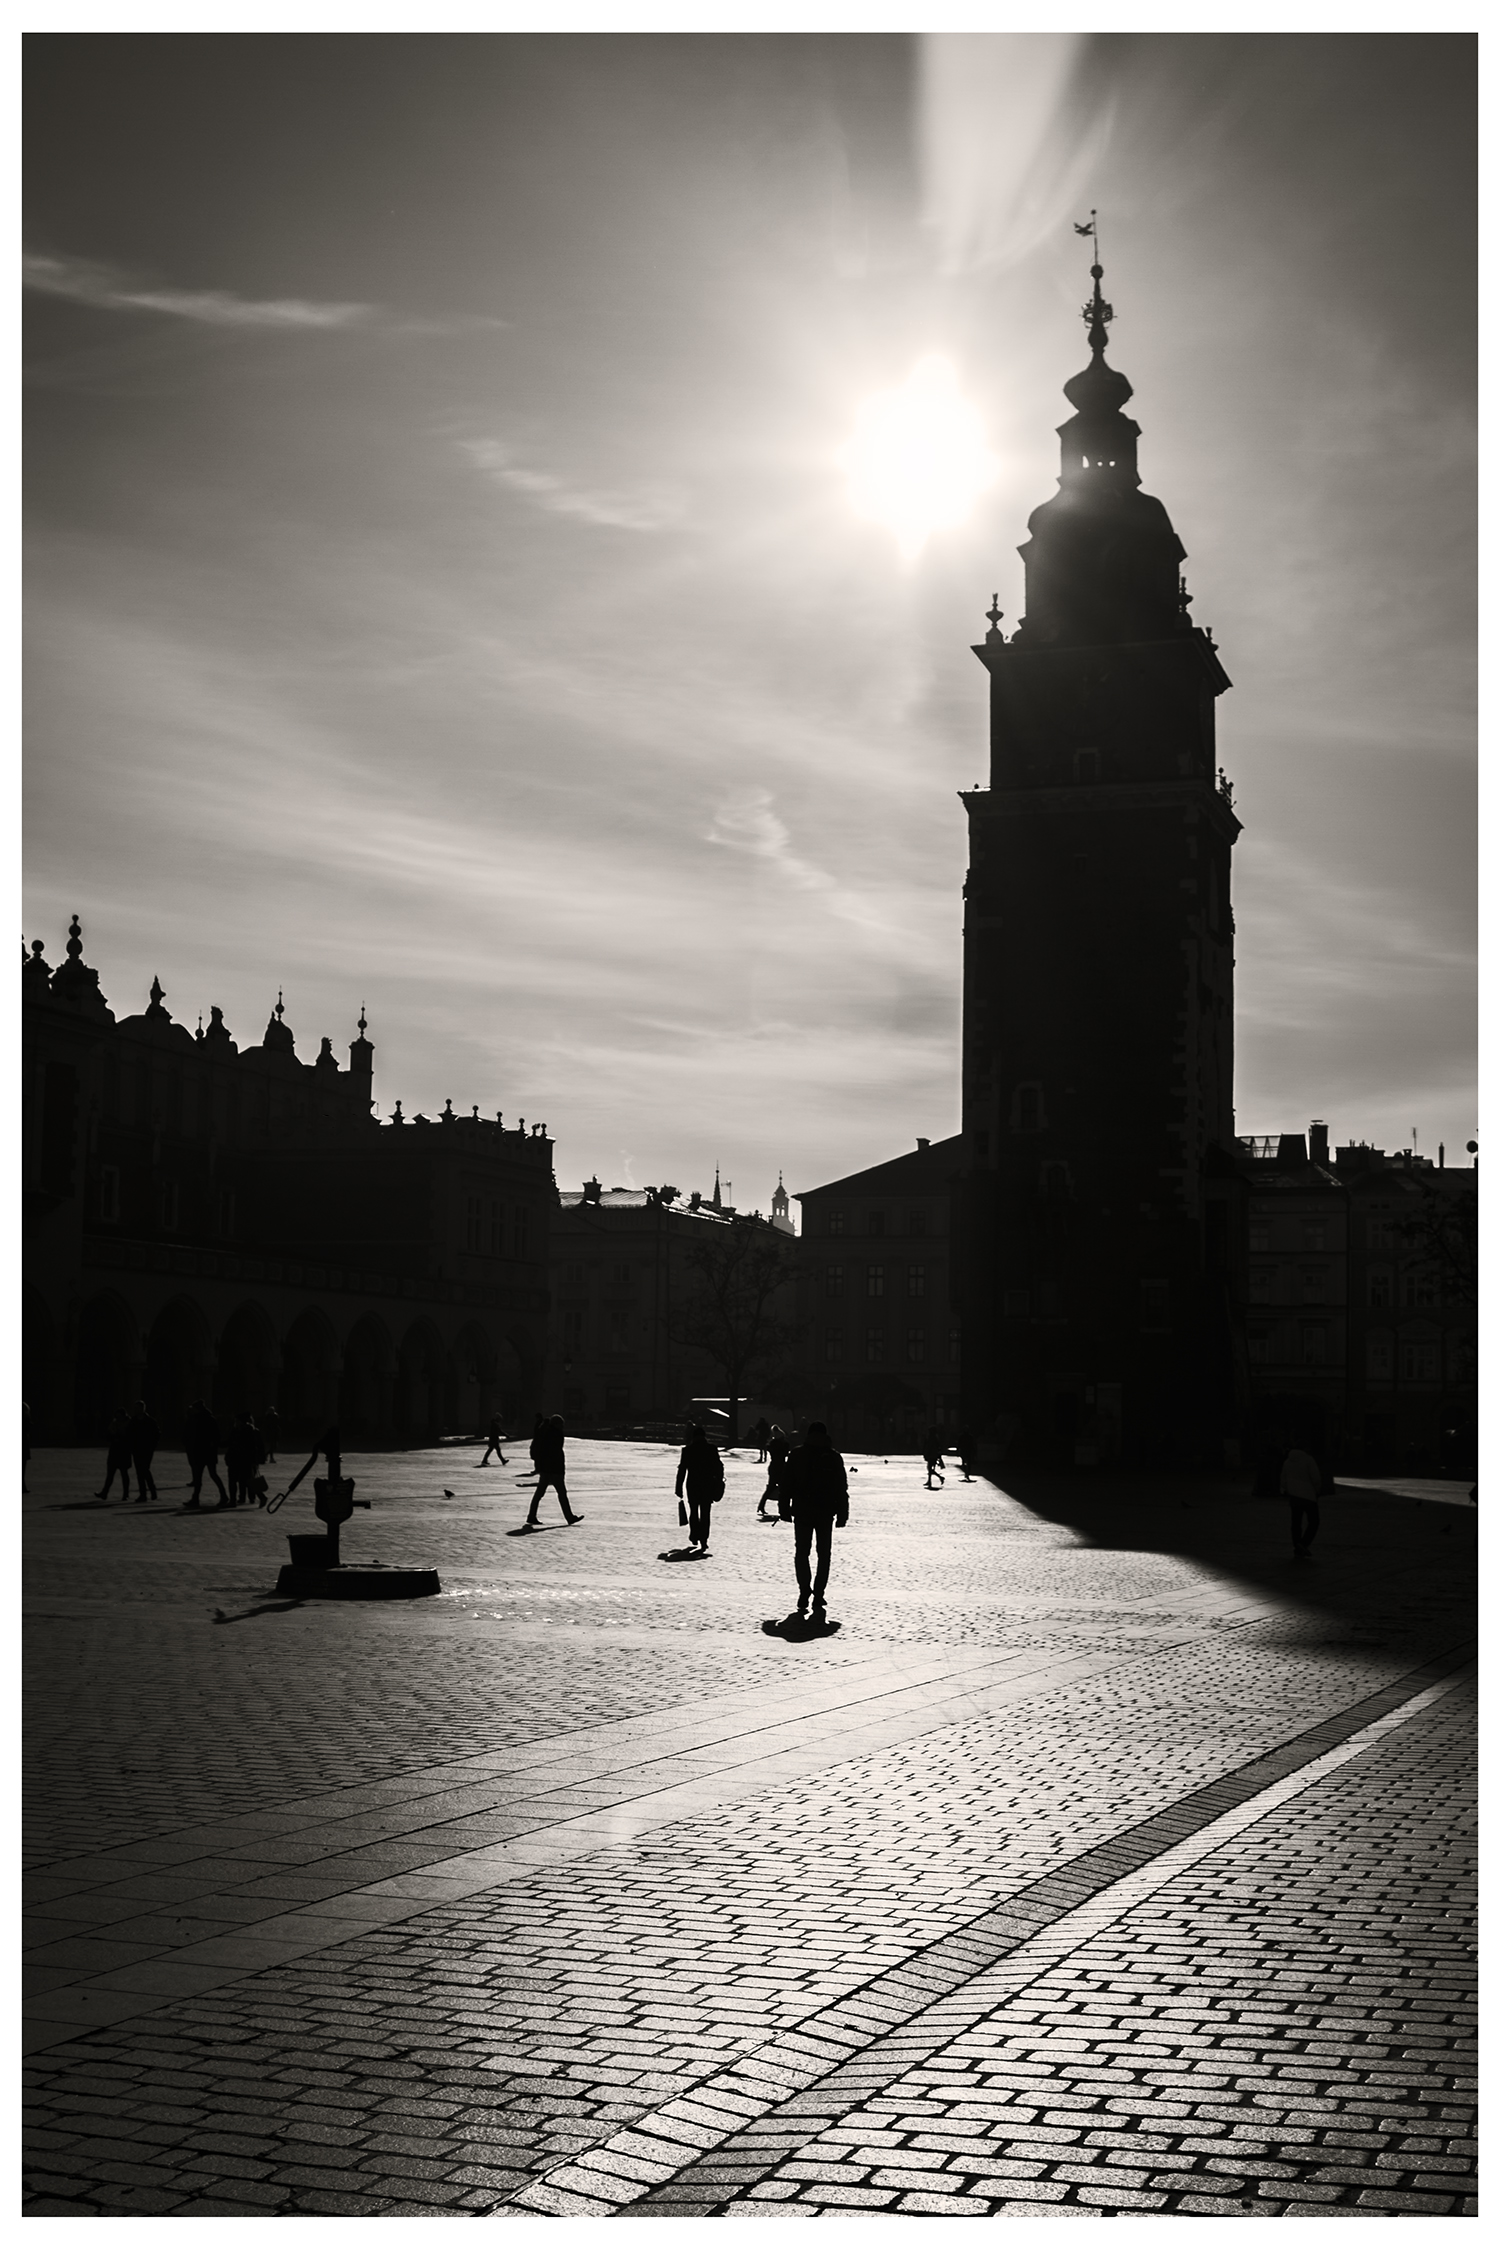 Shadows of Krakow